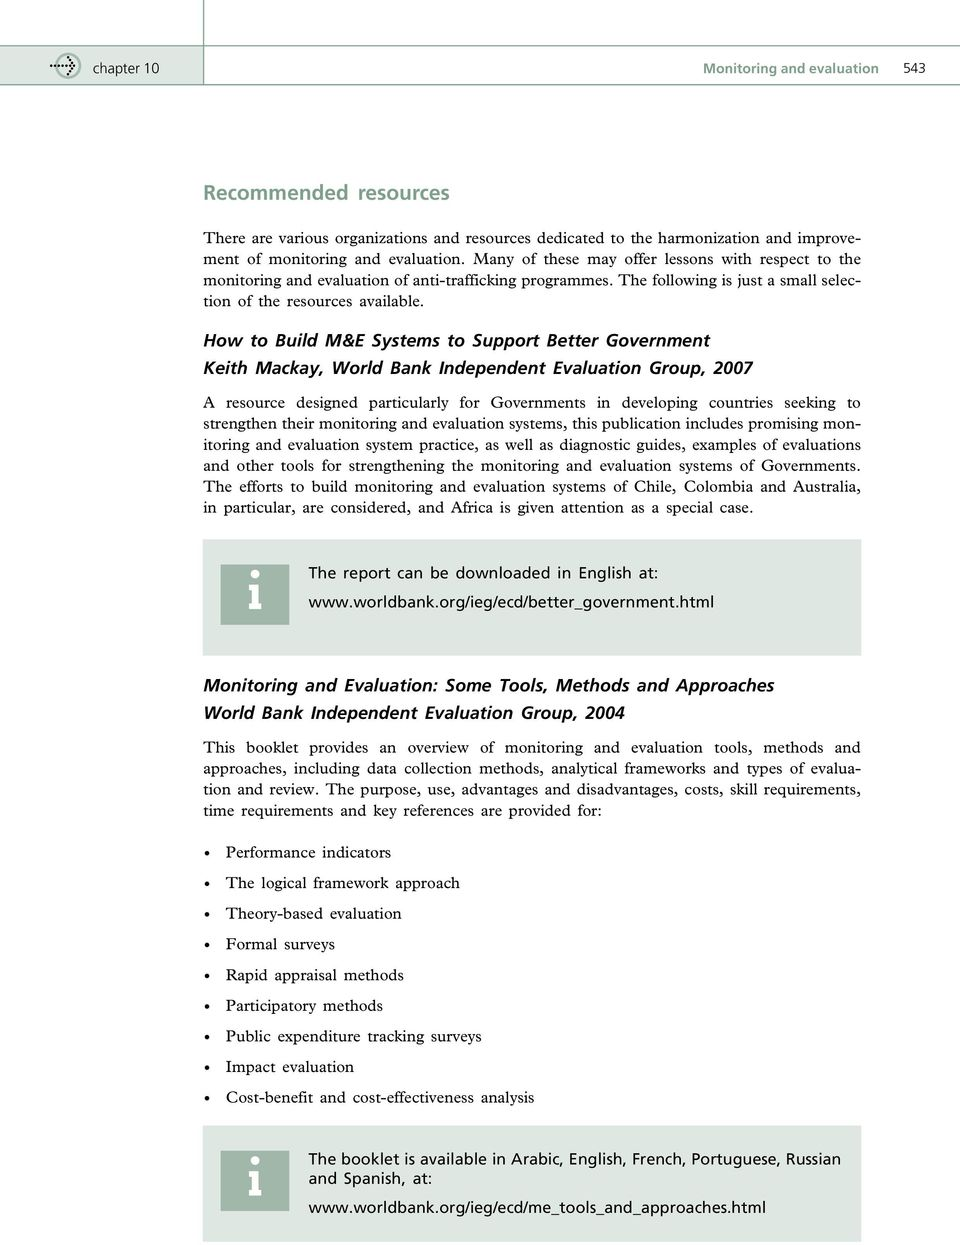 How to Buld M&E Systems to Support Better Government Keth Mackay, World Bank Independent Evaluaton Group, 2007 A resource desgned partcularly for Governments n developng countres seekng to strengthen